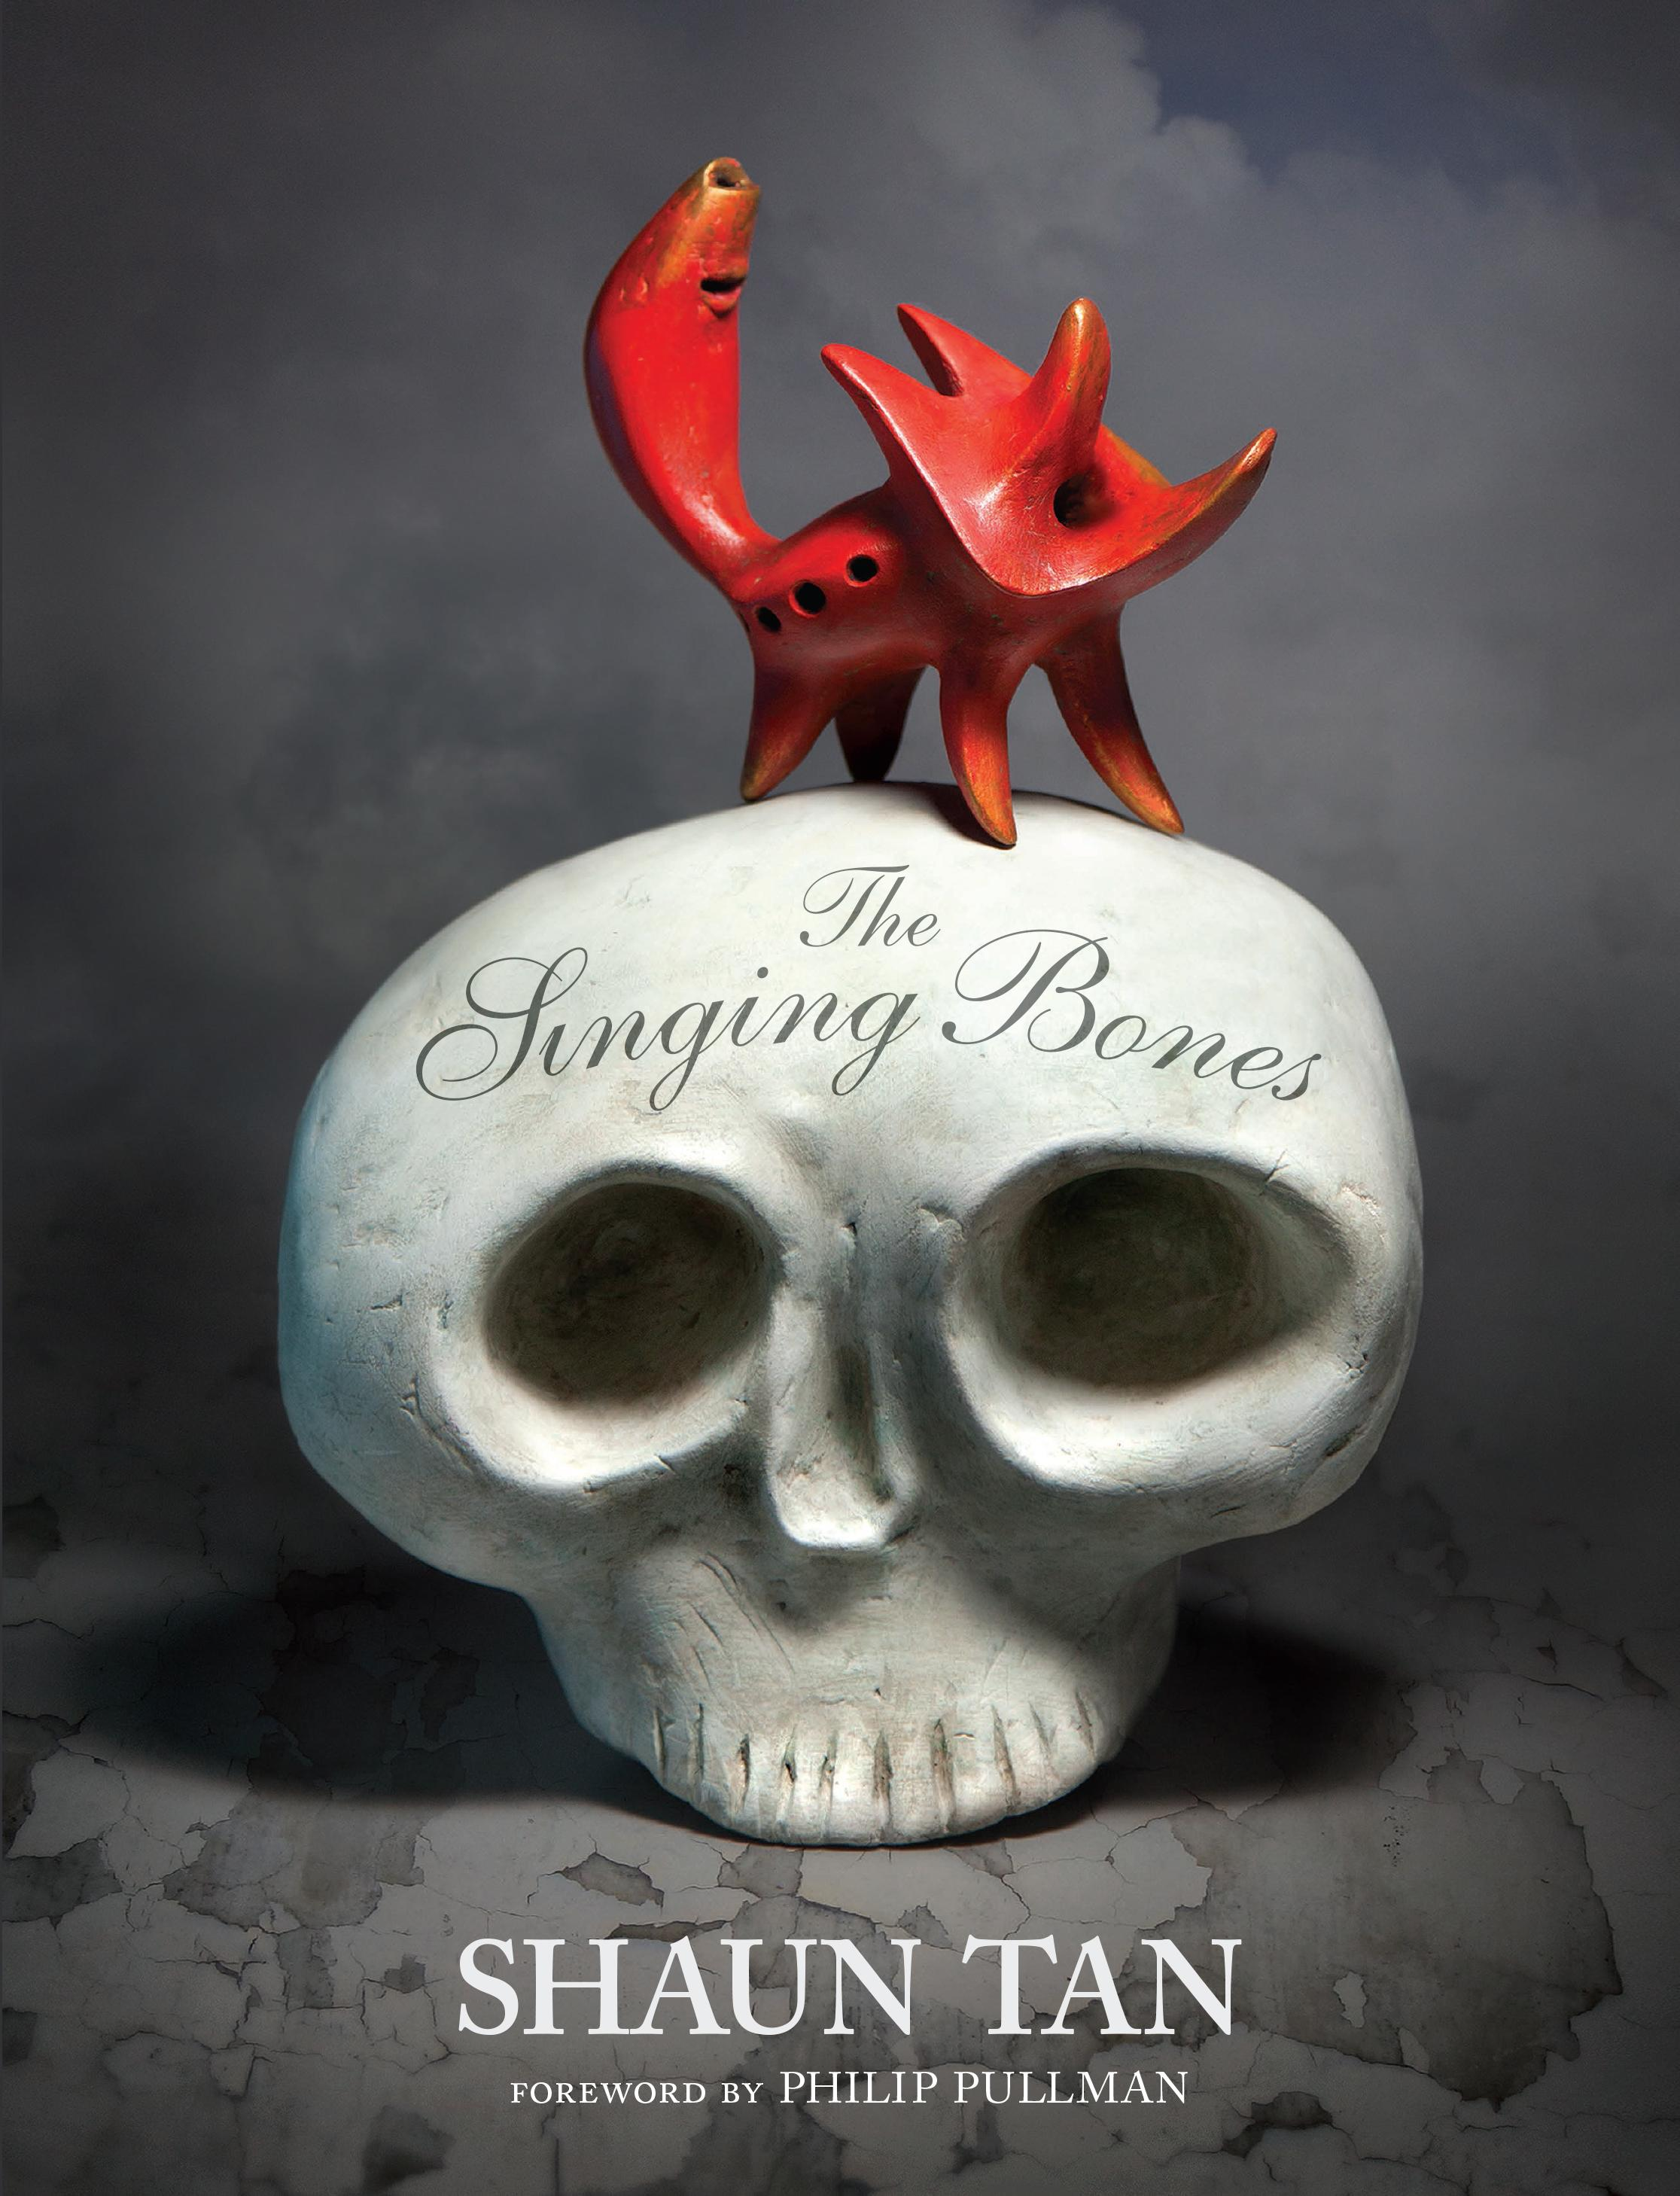 The Singing Bones: Inspired by Grimms'FairyTales